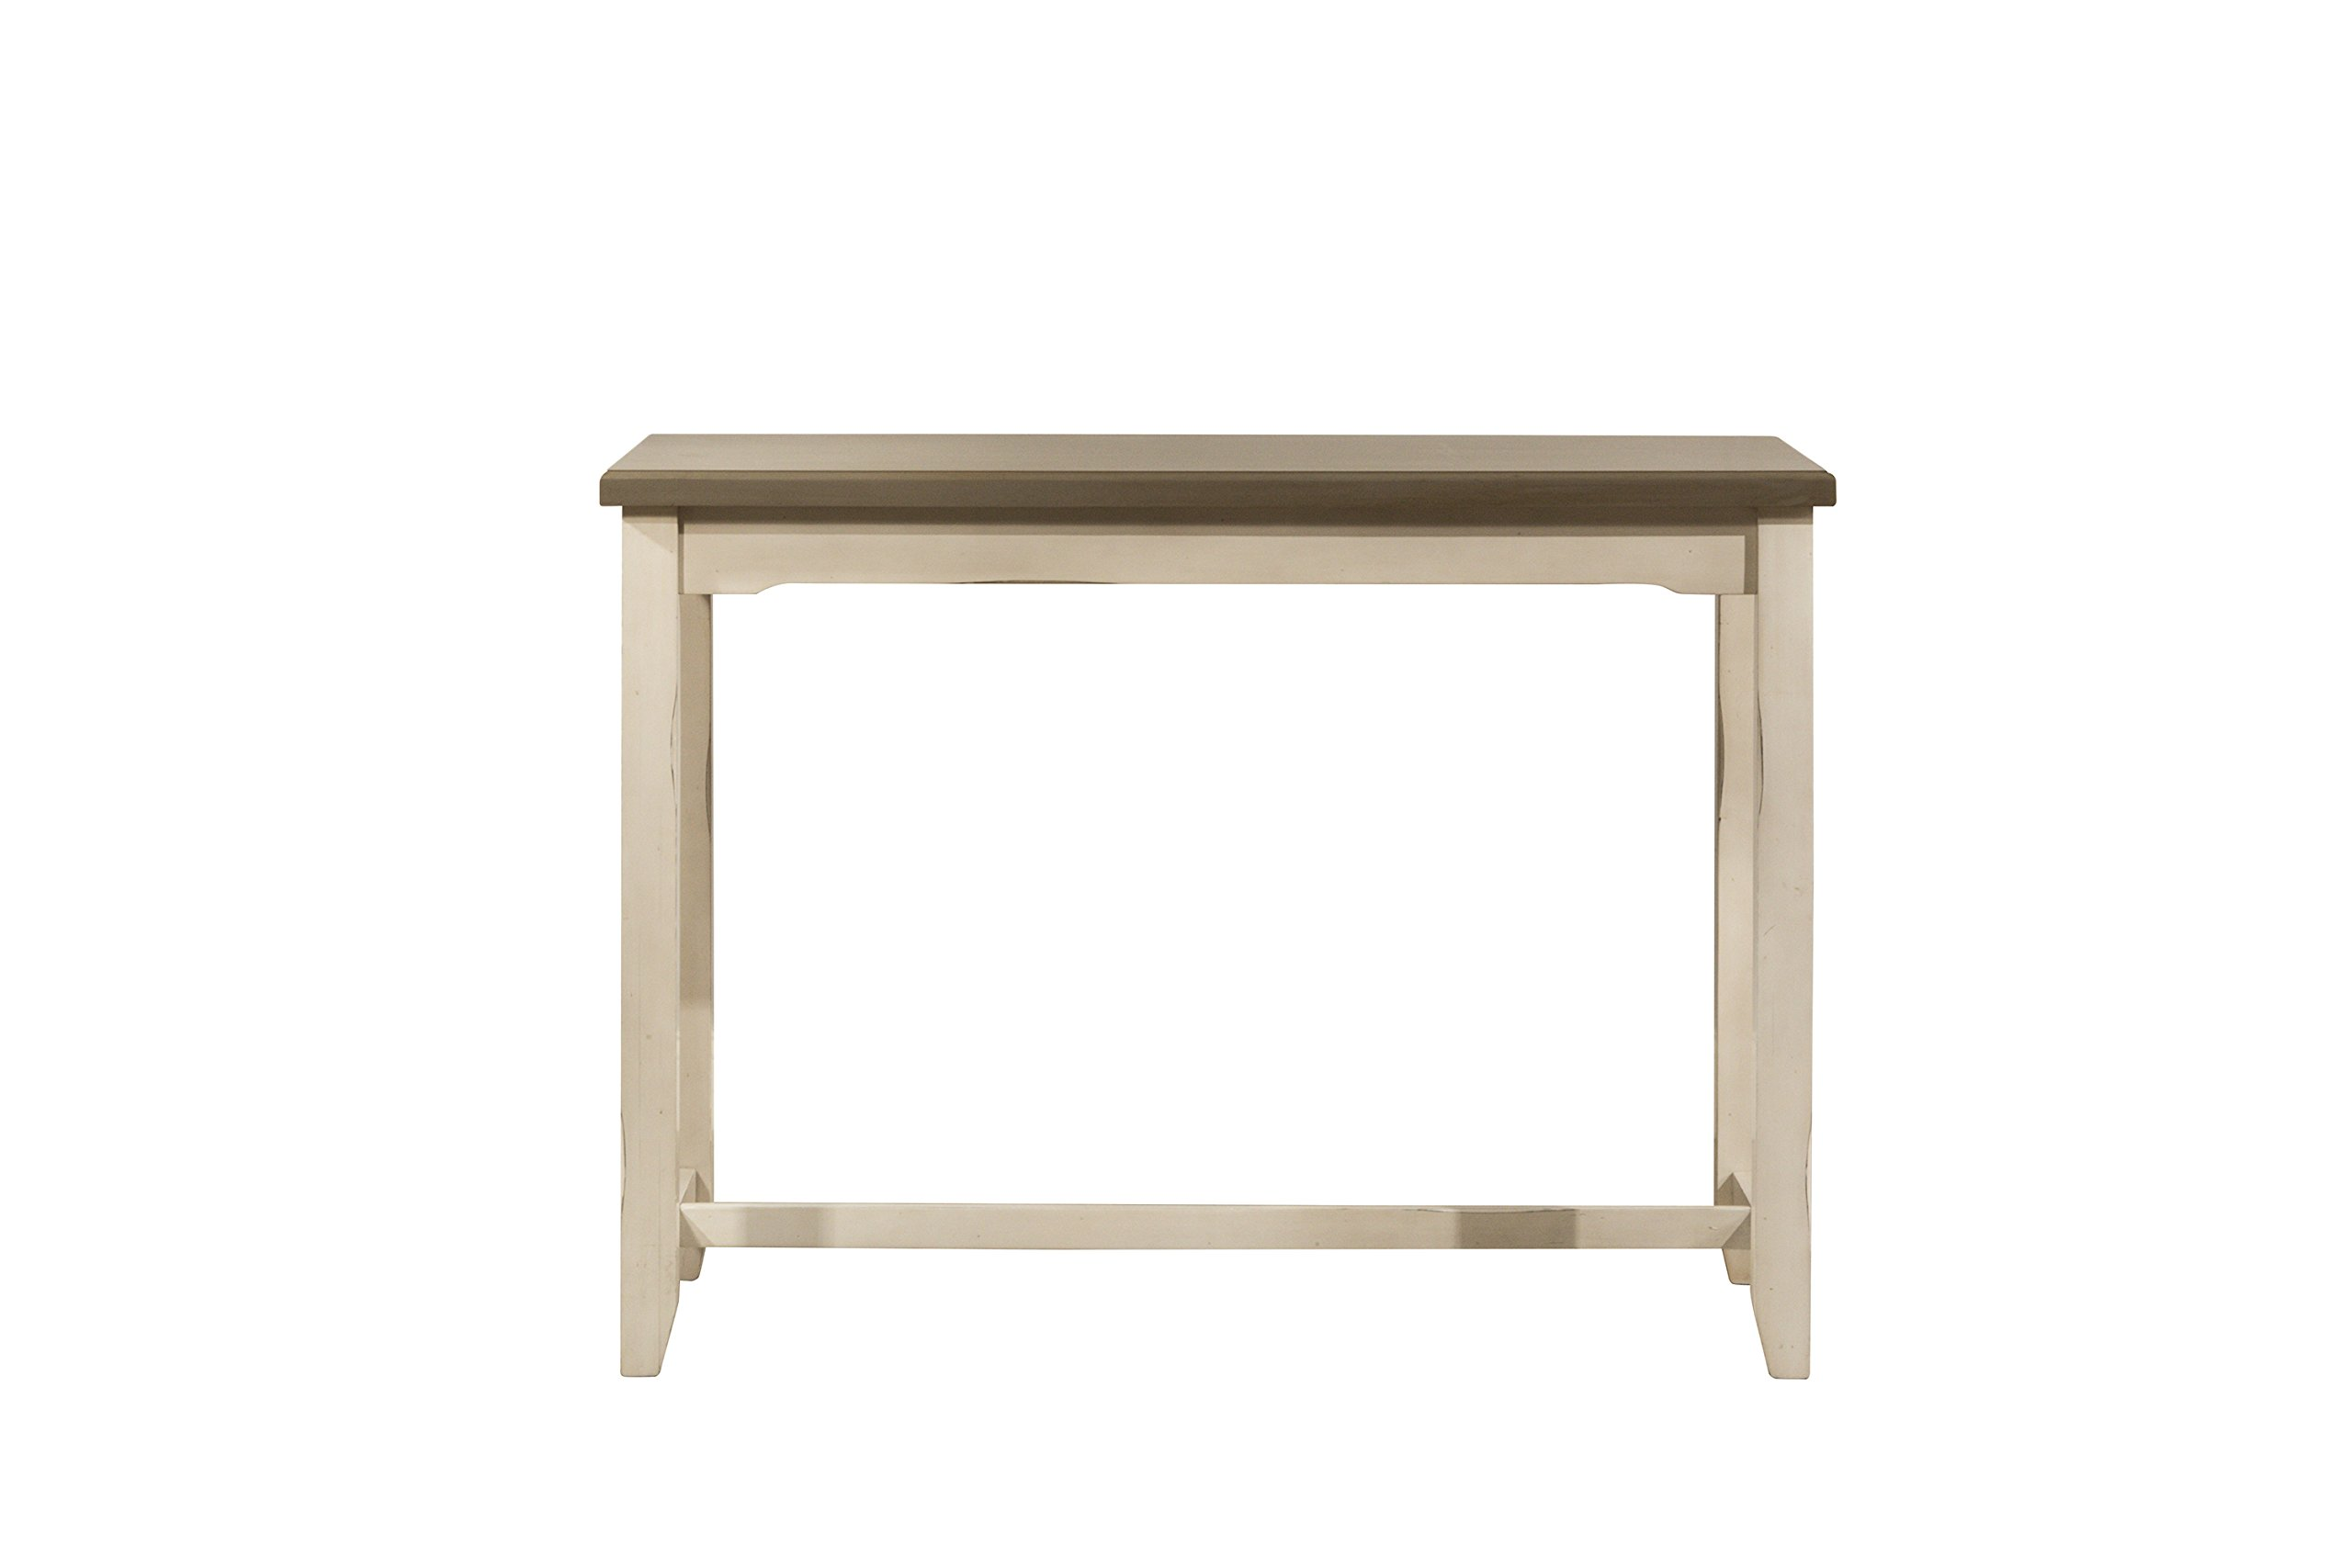 Hillsdale Furniture 4542-880 Hillsdale Clarion Side, Distressed Gray/Sea White Counter Height Table,